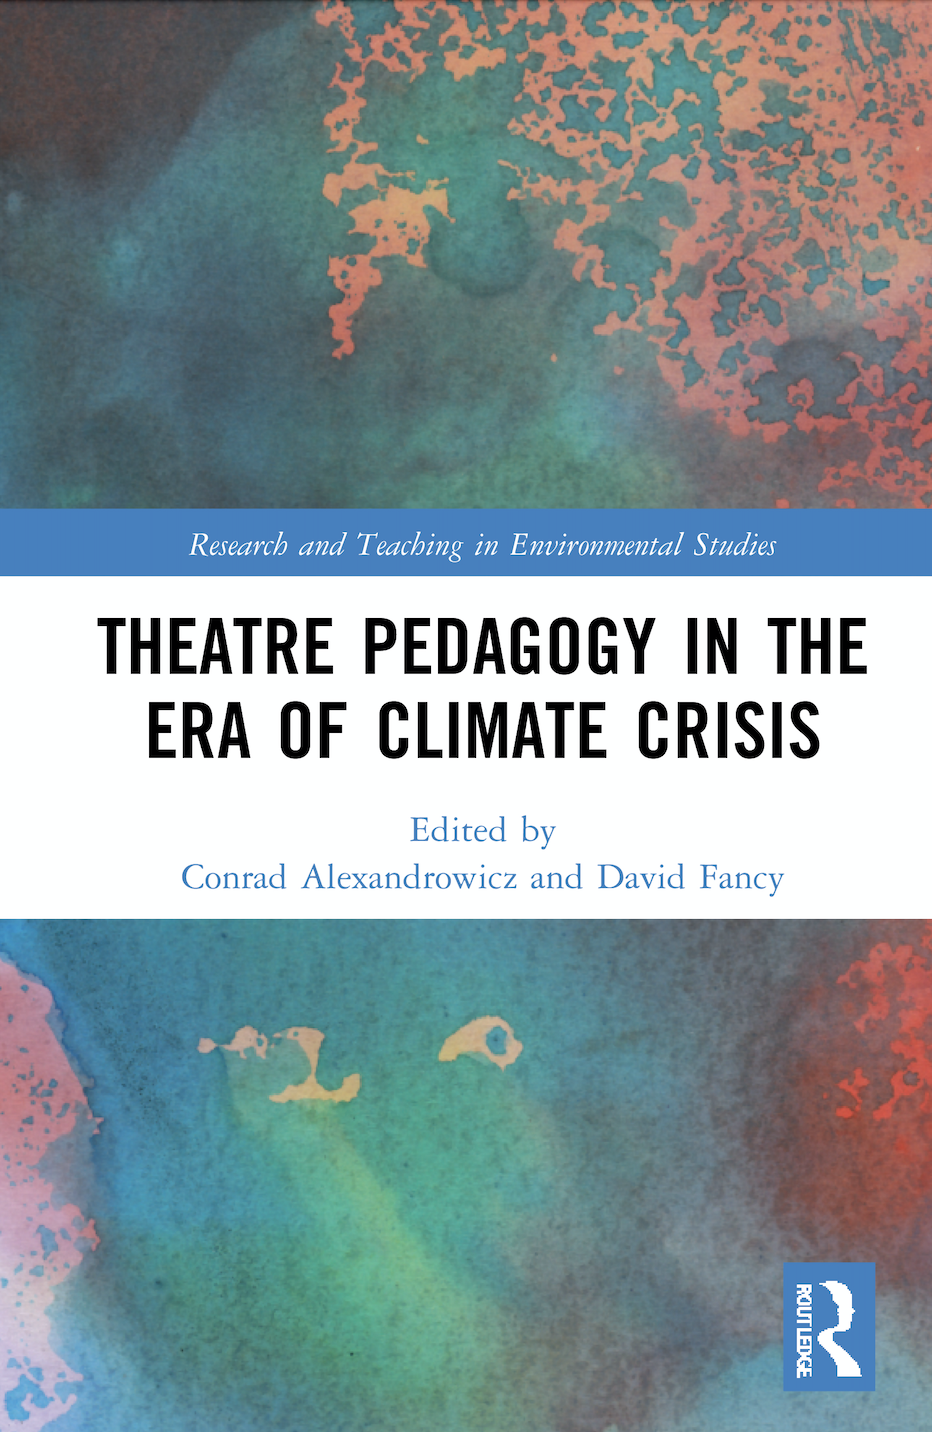 C. Alexandrowicz, D. Fancy (ed.).Theatre Pedagogy in the Era of Climate Crisis